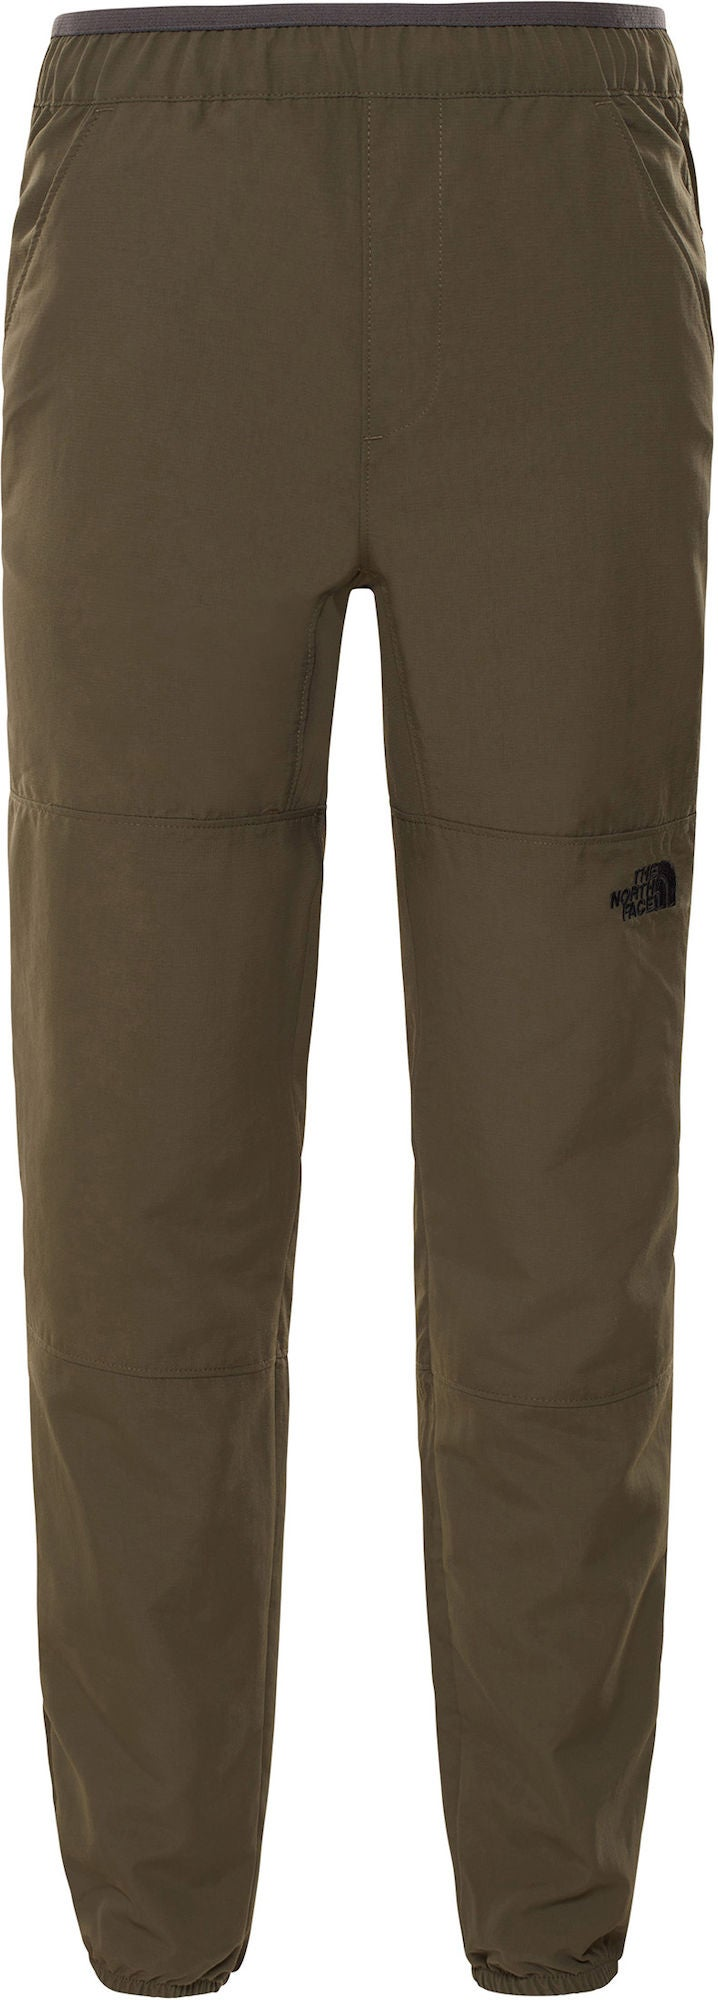 The North Face Byxa, New Taupe Green XL